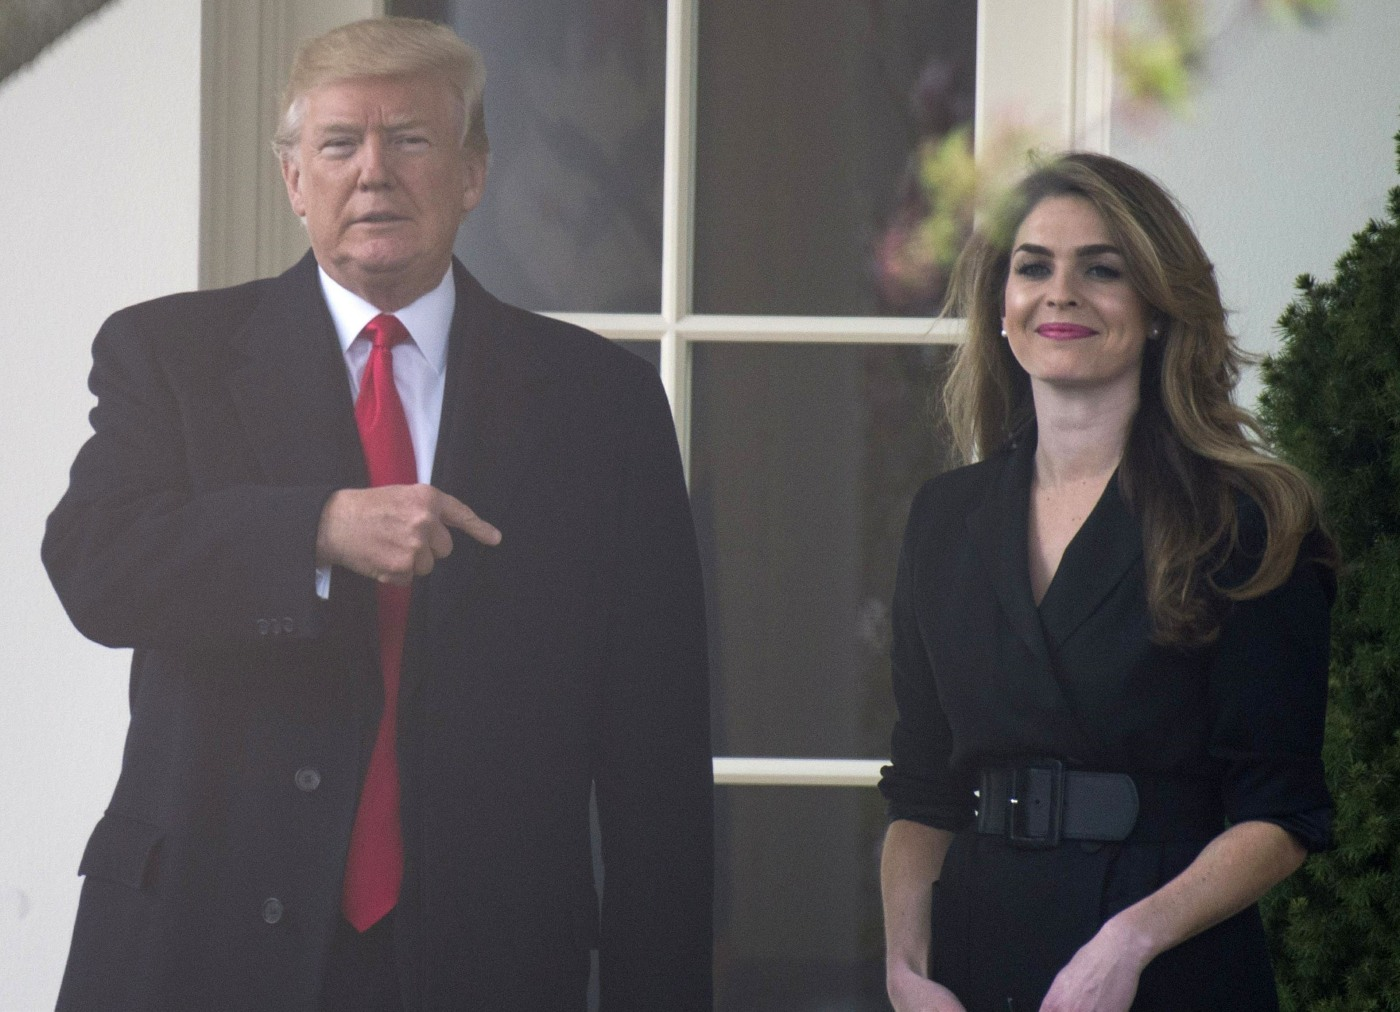 Hope Hicks, 29, is the new head of communications for Fox News